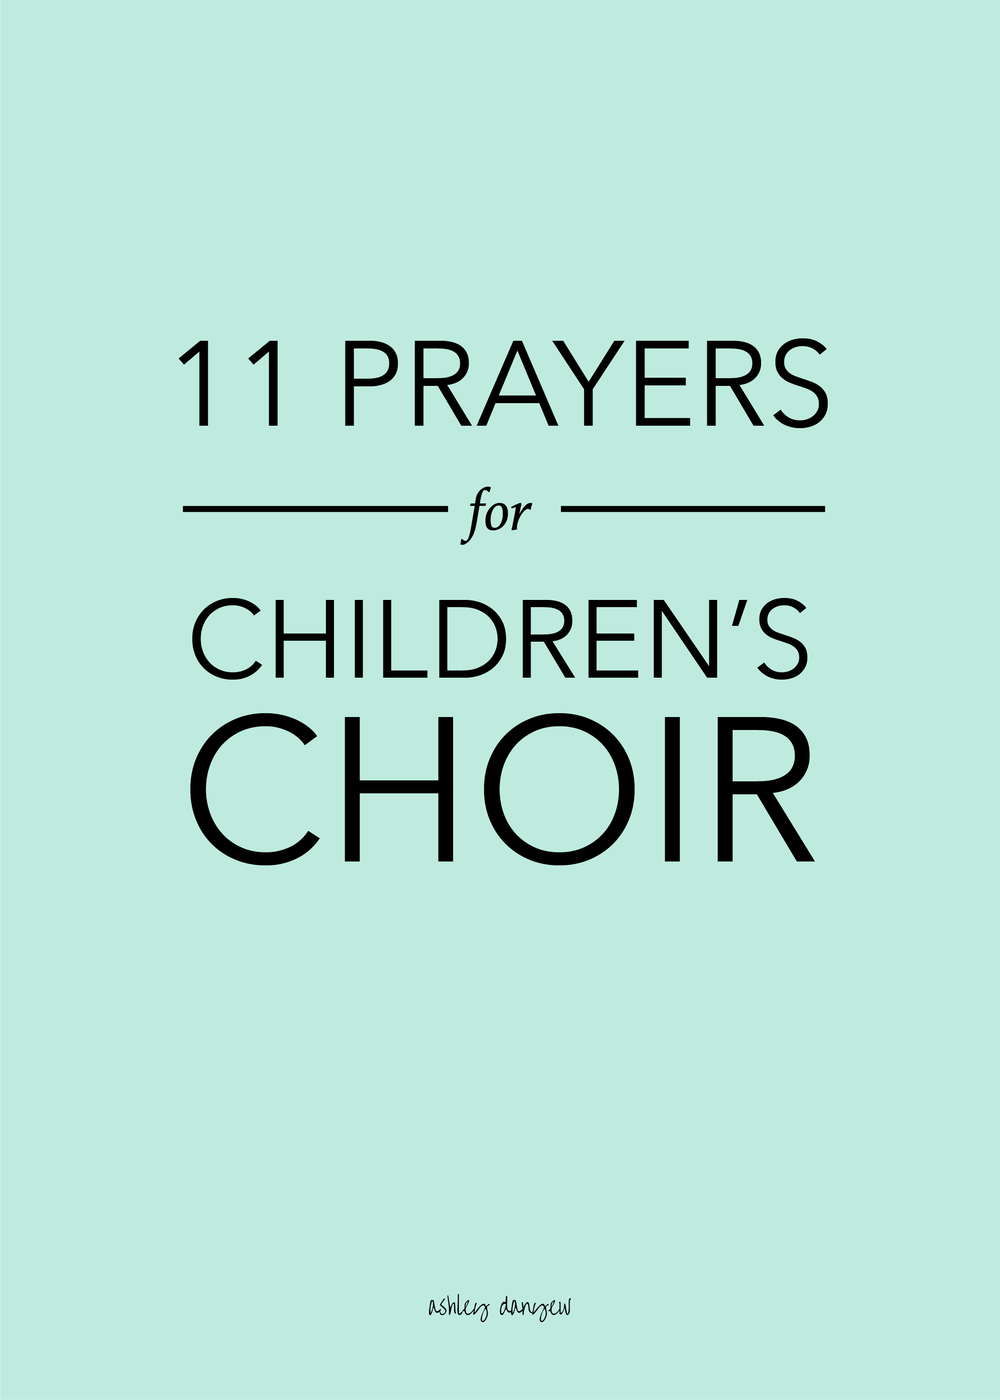 Children's Choir Prayers.png